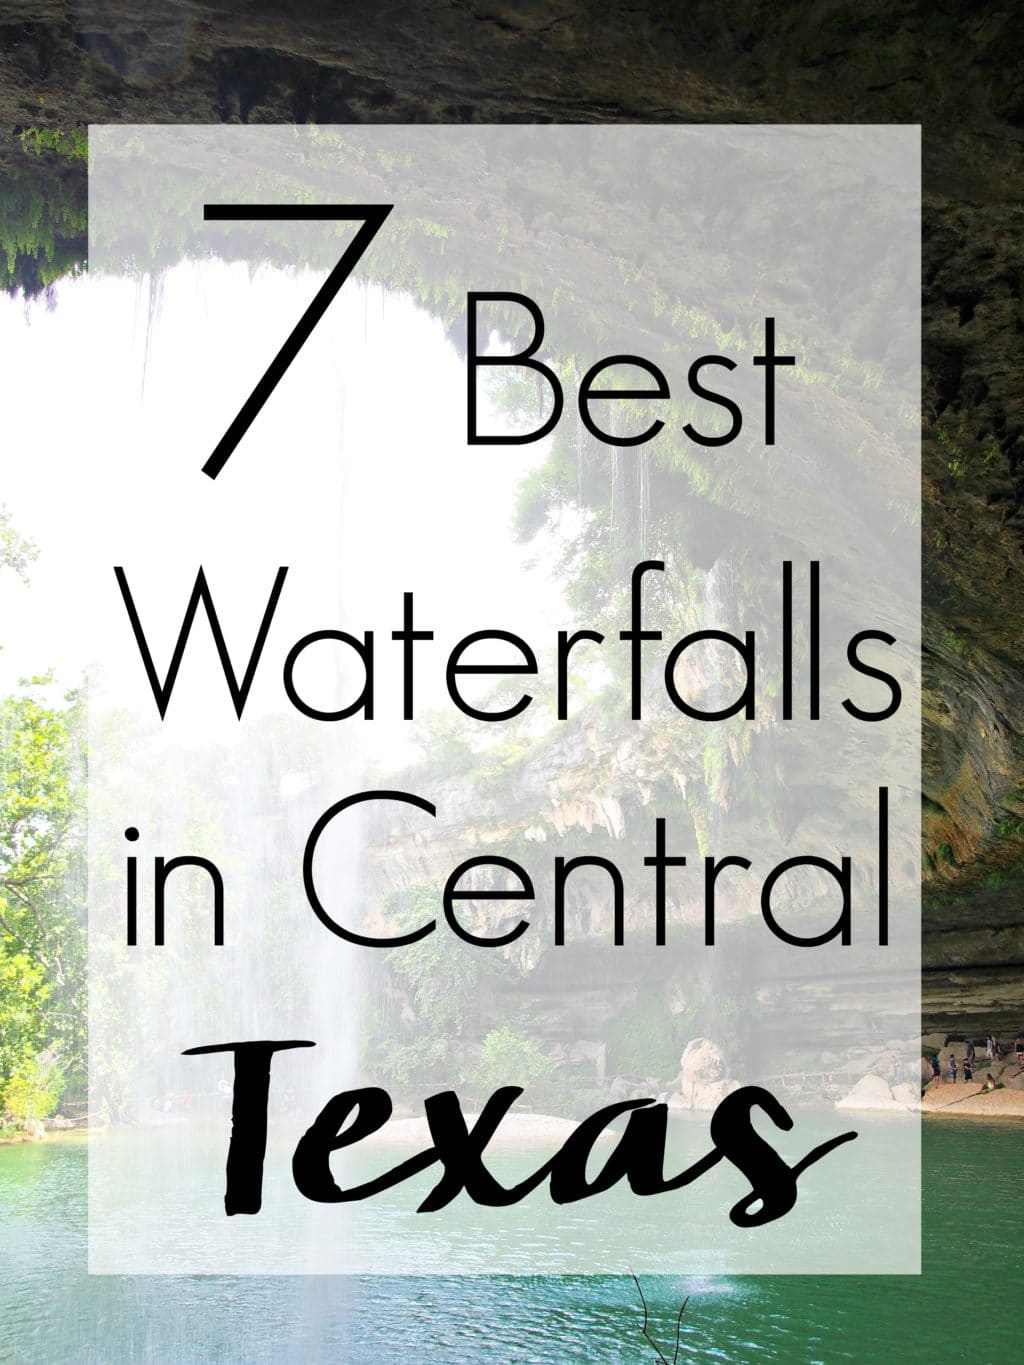 You don't have to travel far to cool down this summer with this collection of the 7 Best Central Texas Waterfalls located within an hour of the greater Austin area. City parks, state parks, and everything in between!